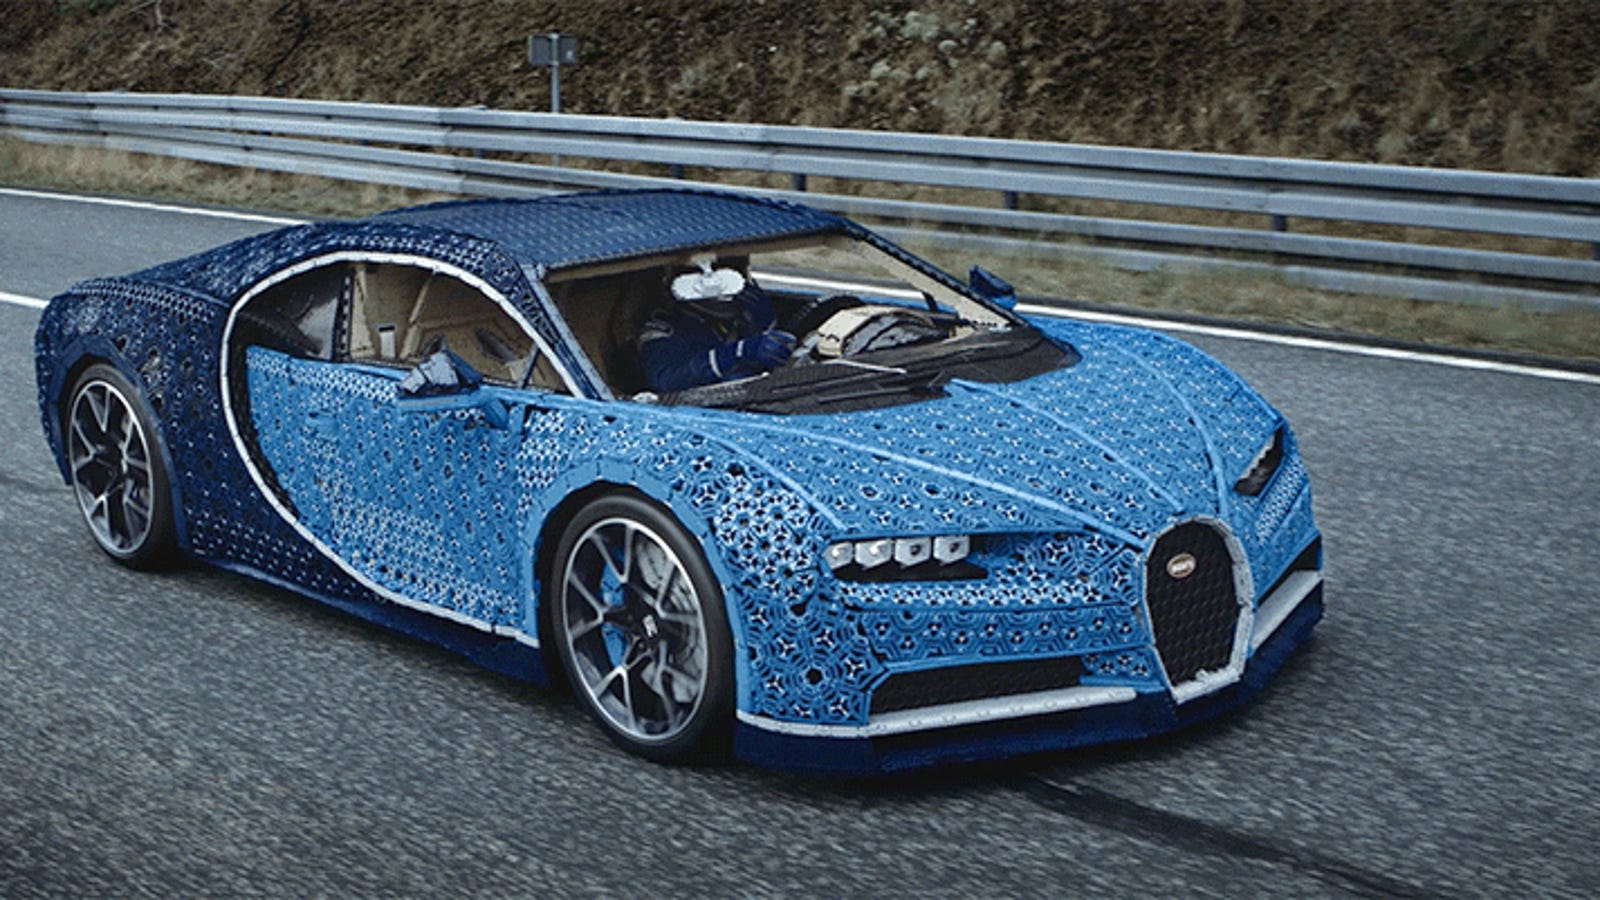 Marvel At This Drivable Bugatti Chiron Built From a Million Pieces of Lego Technic and 2,304 Electric Toy Motors